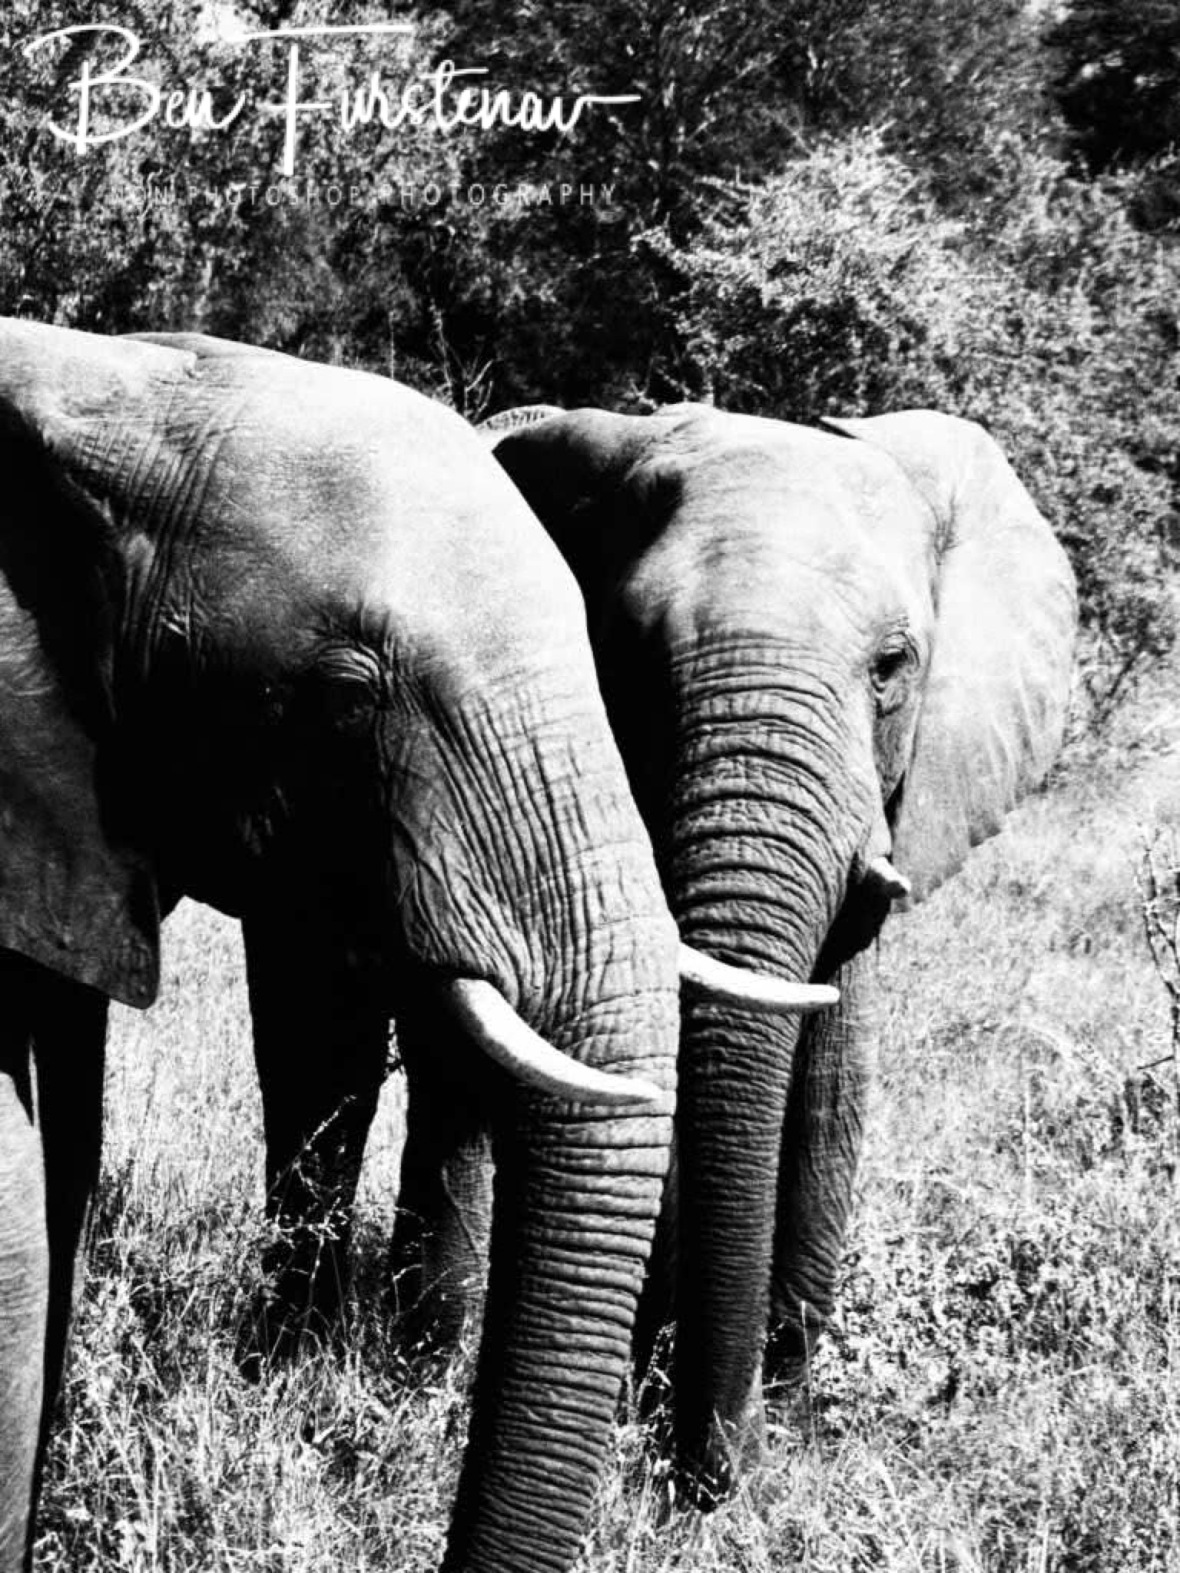 No show without elephants, Kruger National Park